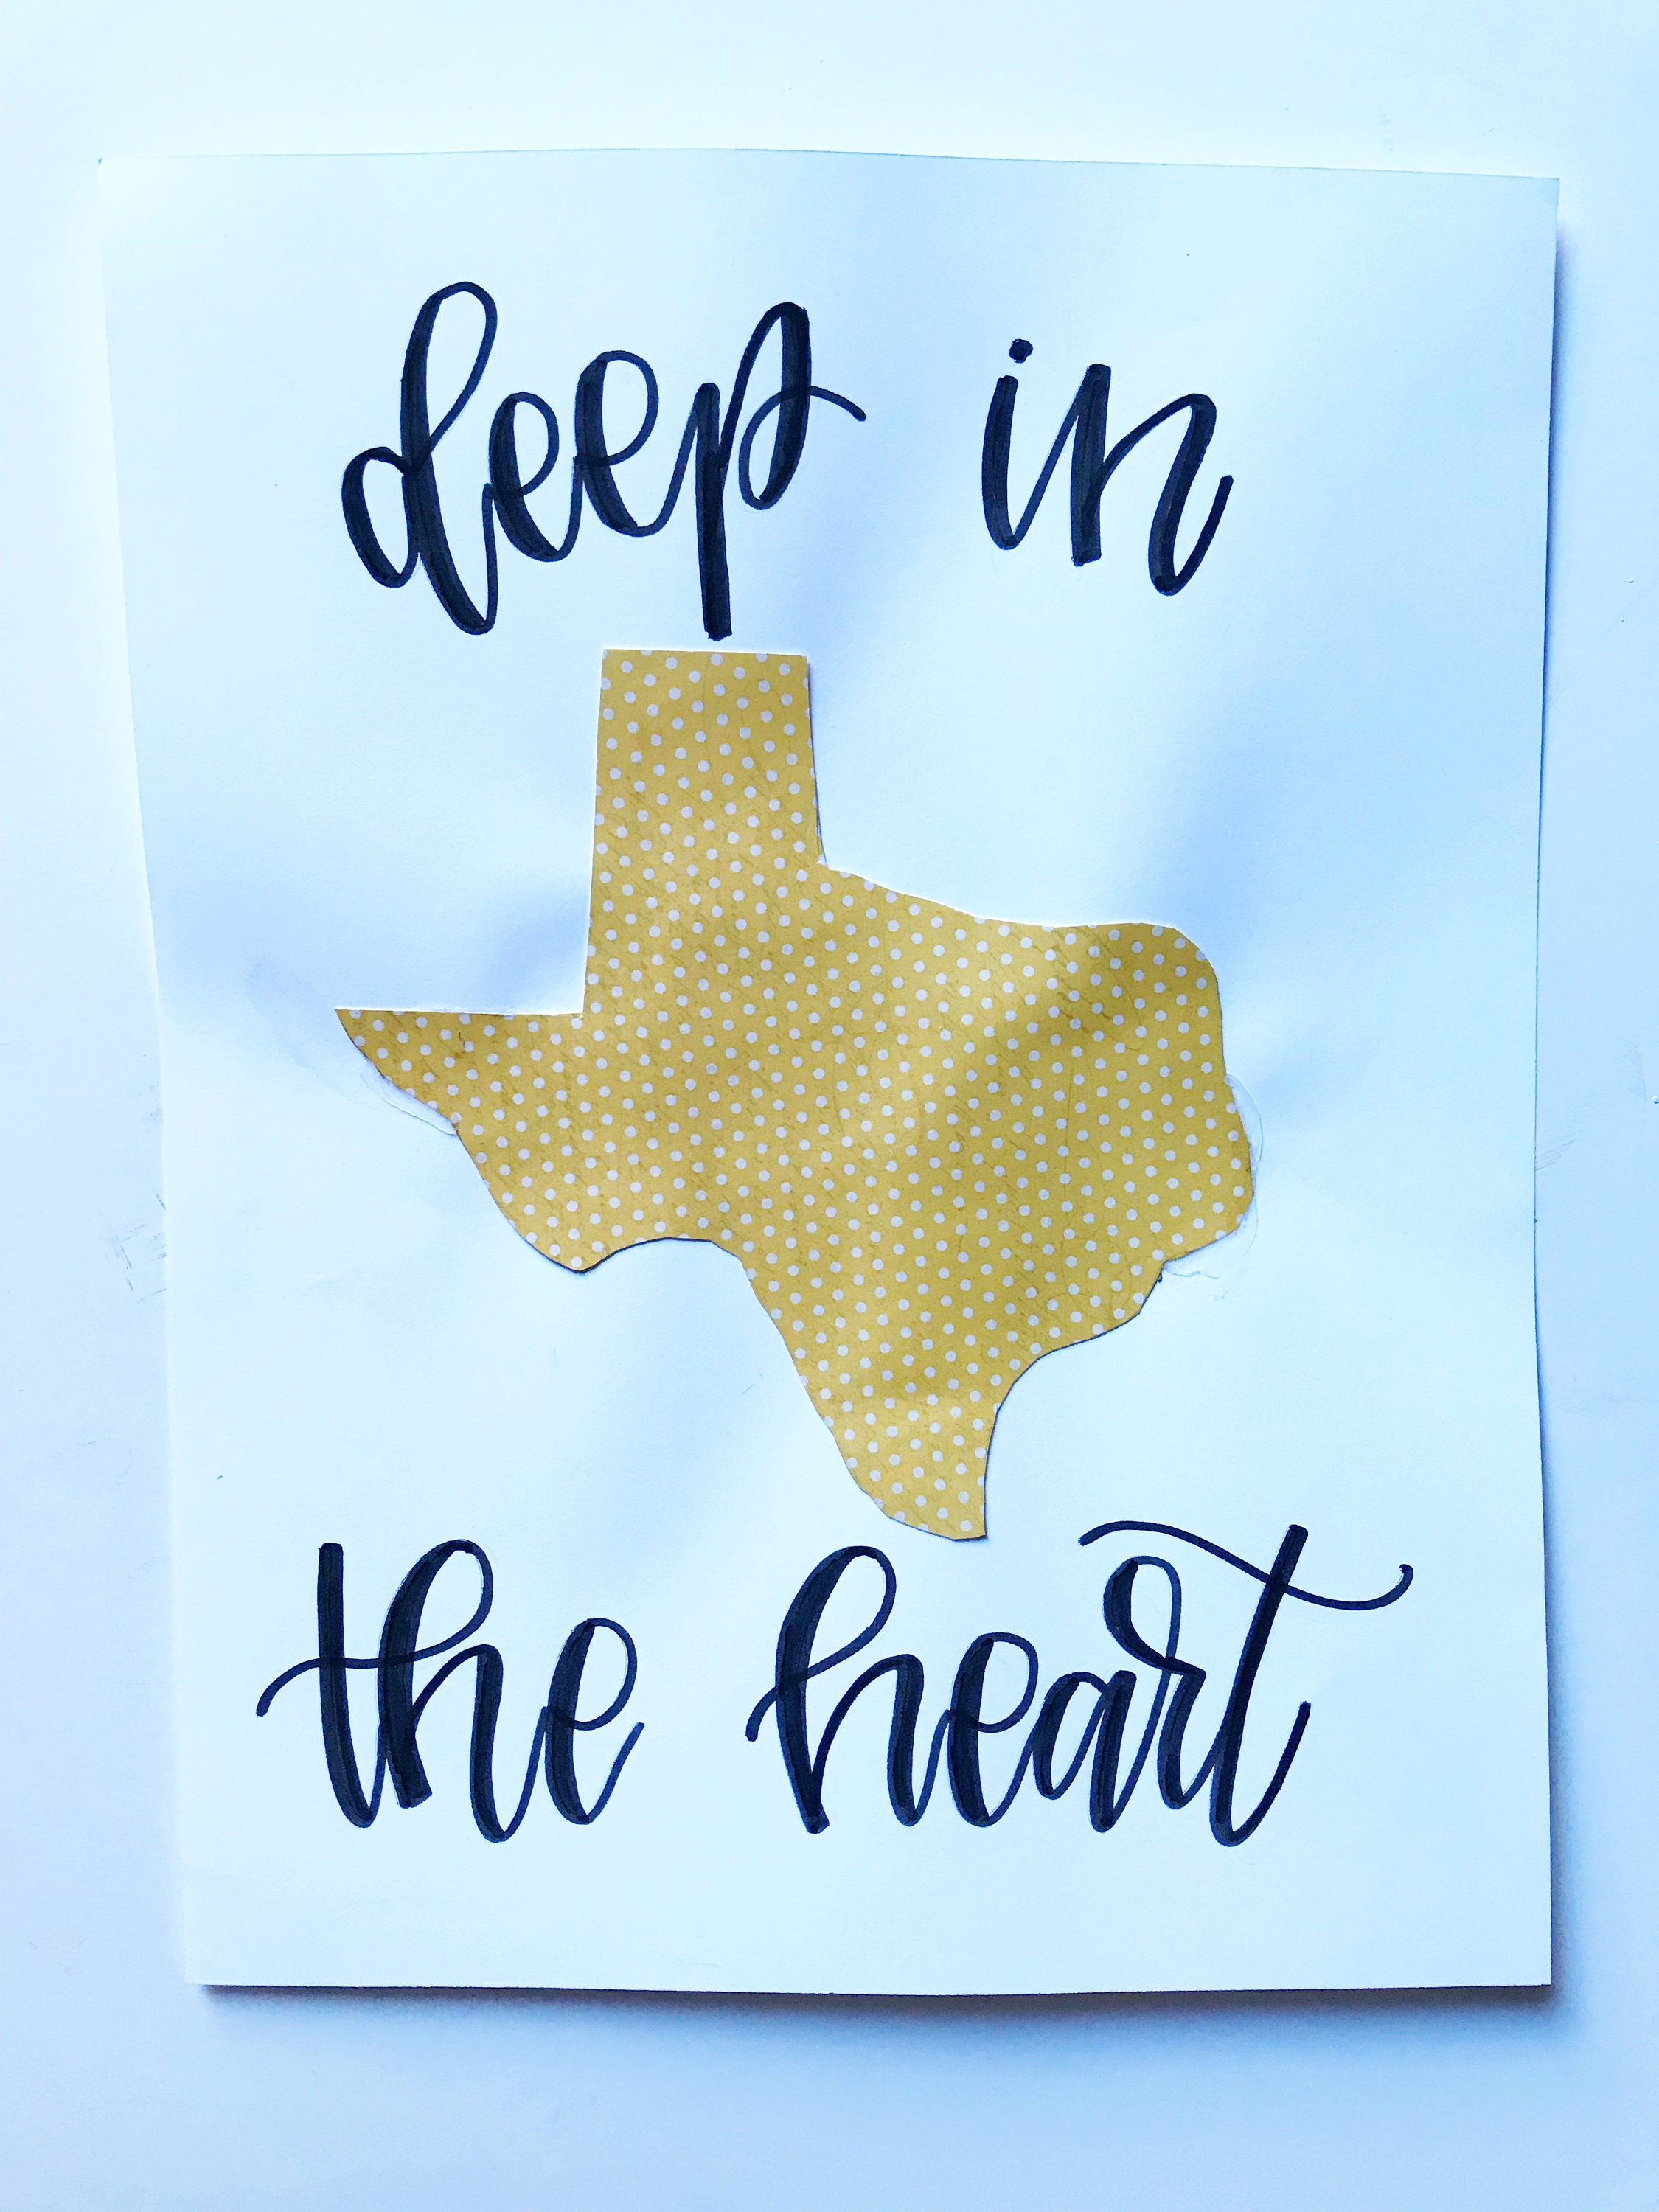 Deep in the heart Texas art original art collage mixed